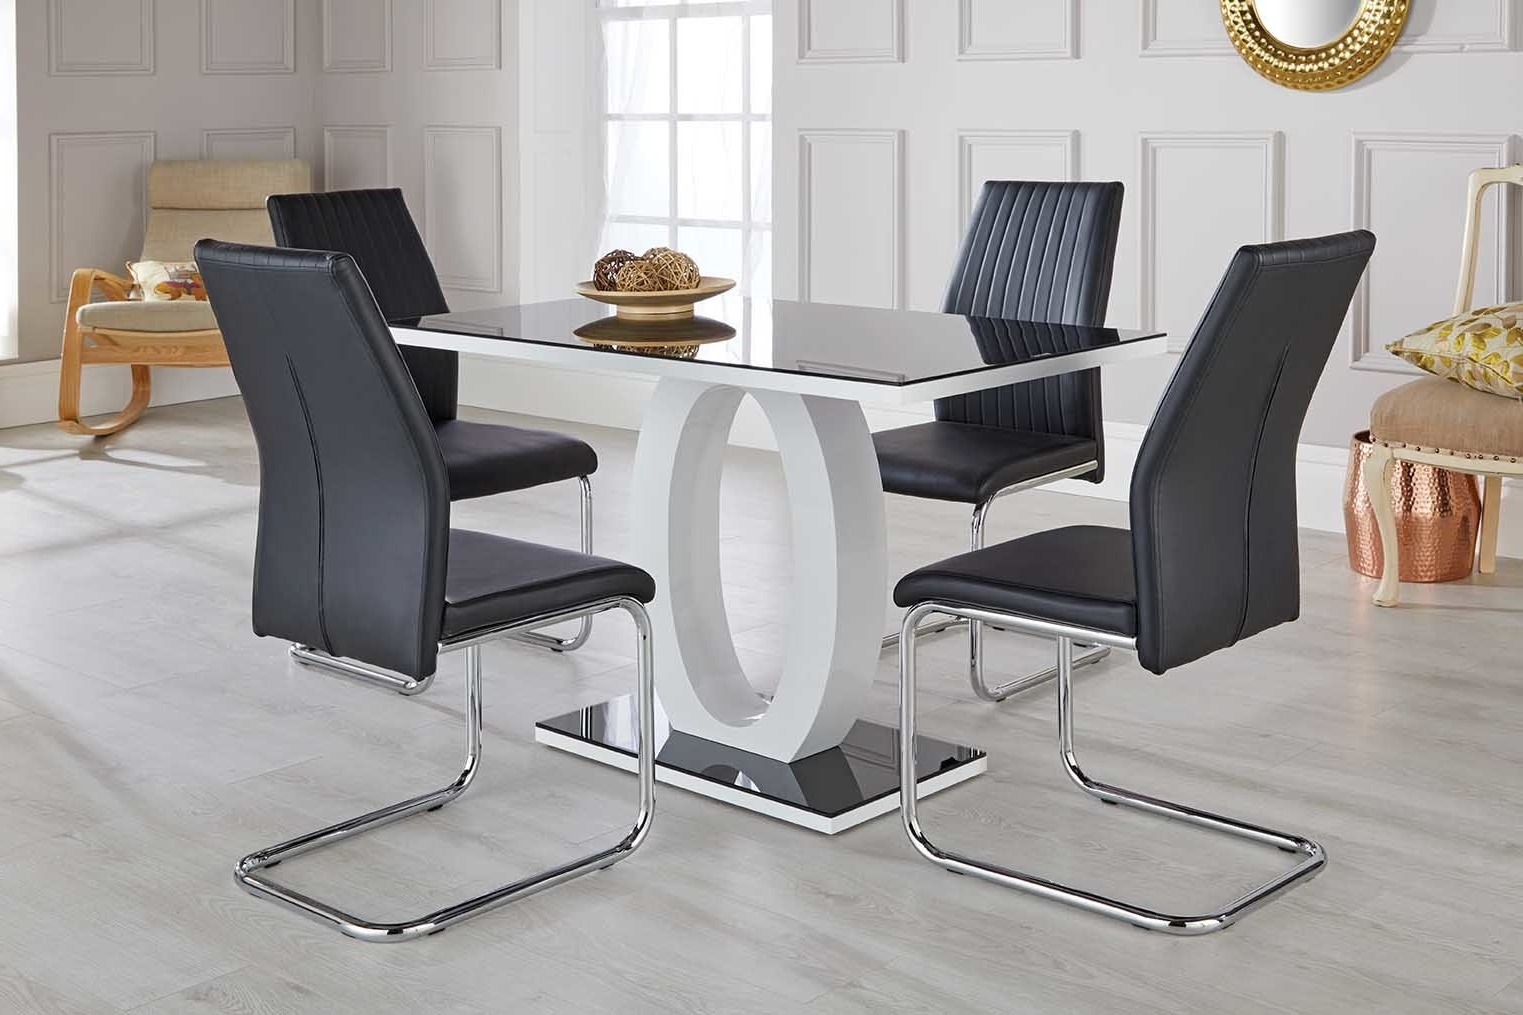 Orren Ellis Ramsel High Gloss Glass Dining Set With 4 Chairs Regarding Trendy Cheap Glass Dining Tables And 4 Chairs (View 15 of 25)